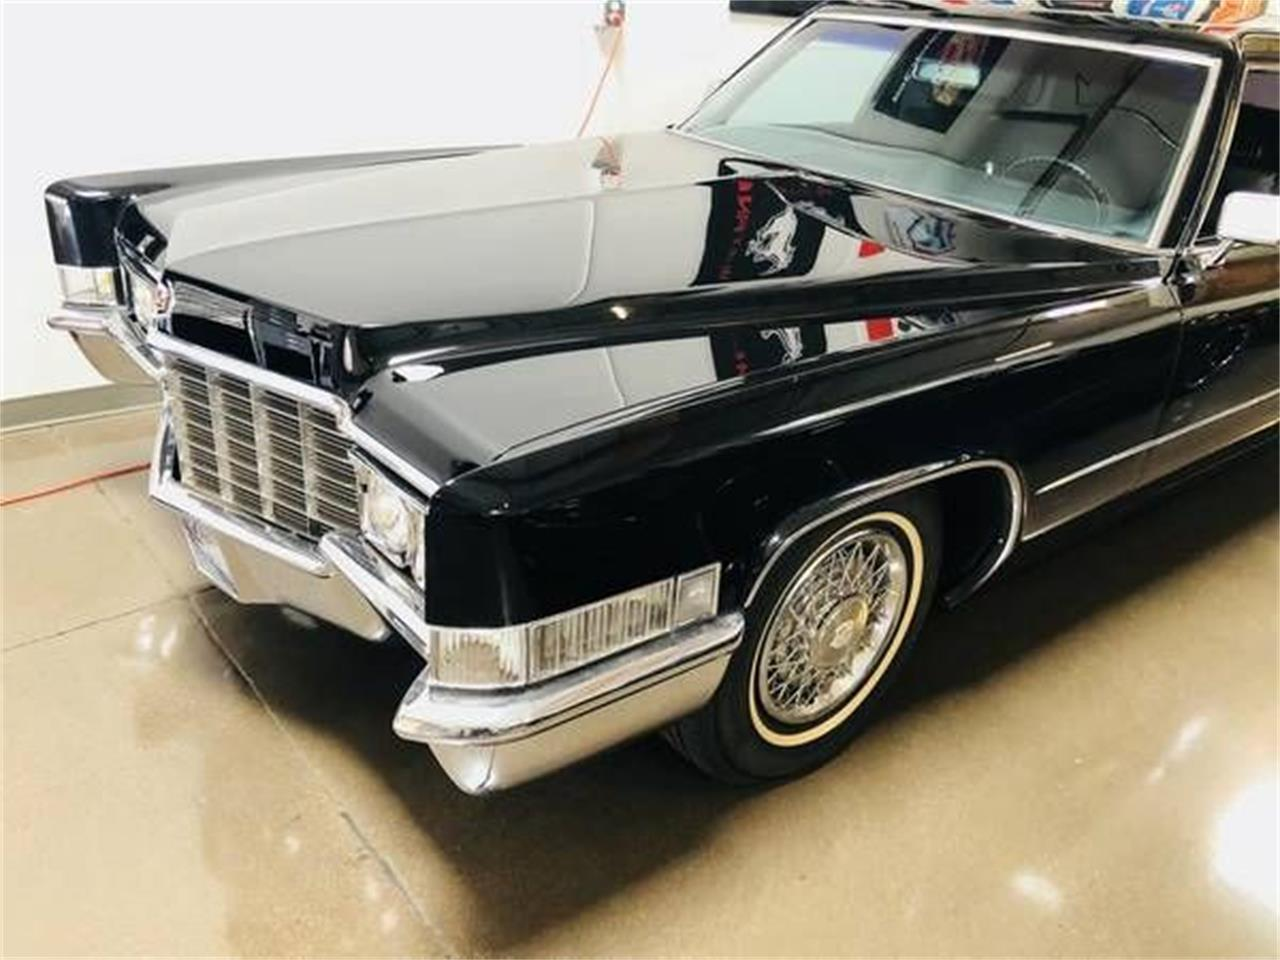 1969 Cadillac Fleetwood for sale in Cadillac, MI – photo 3